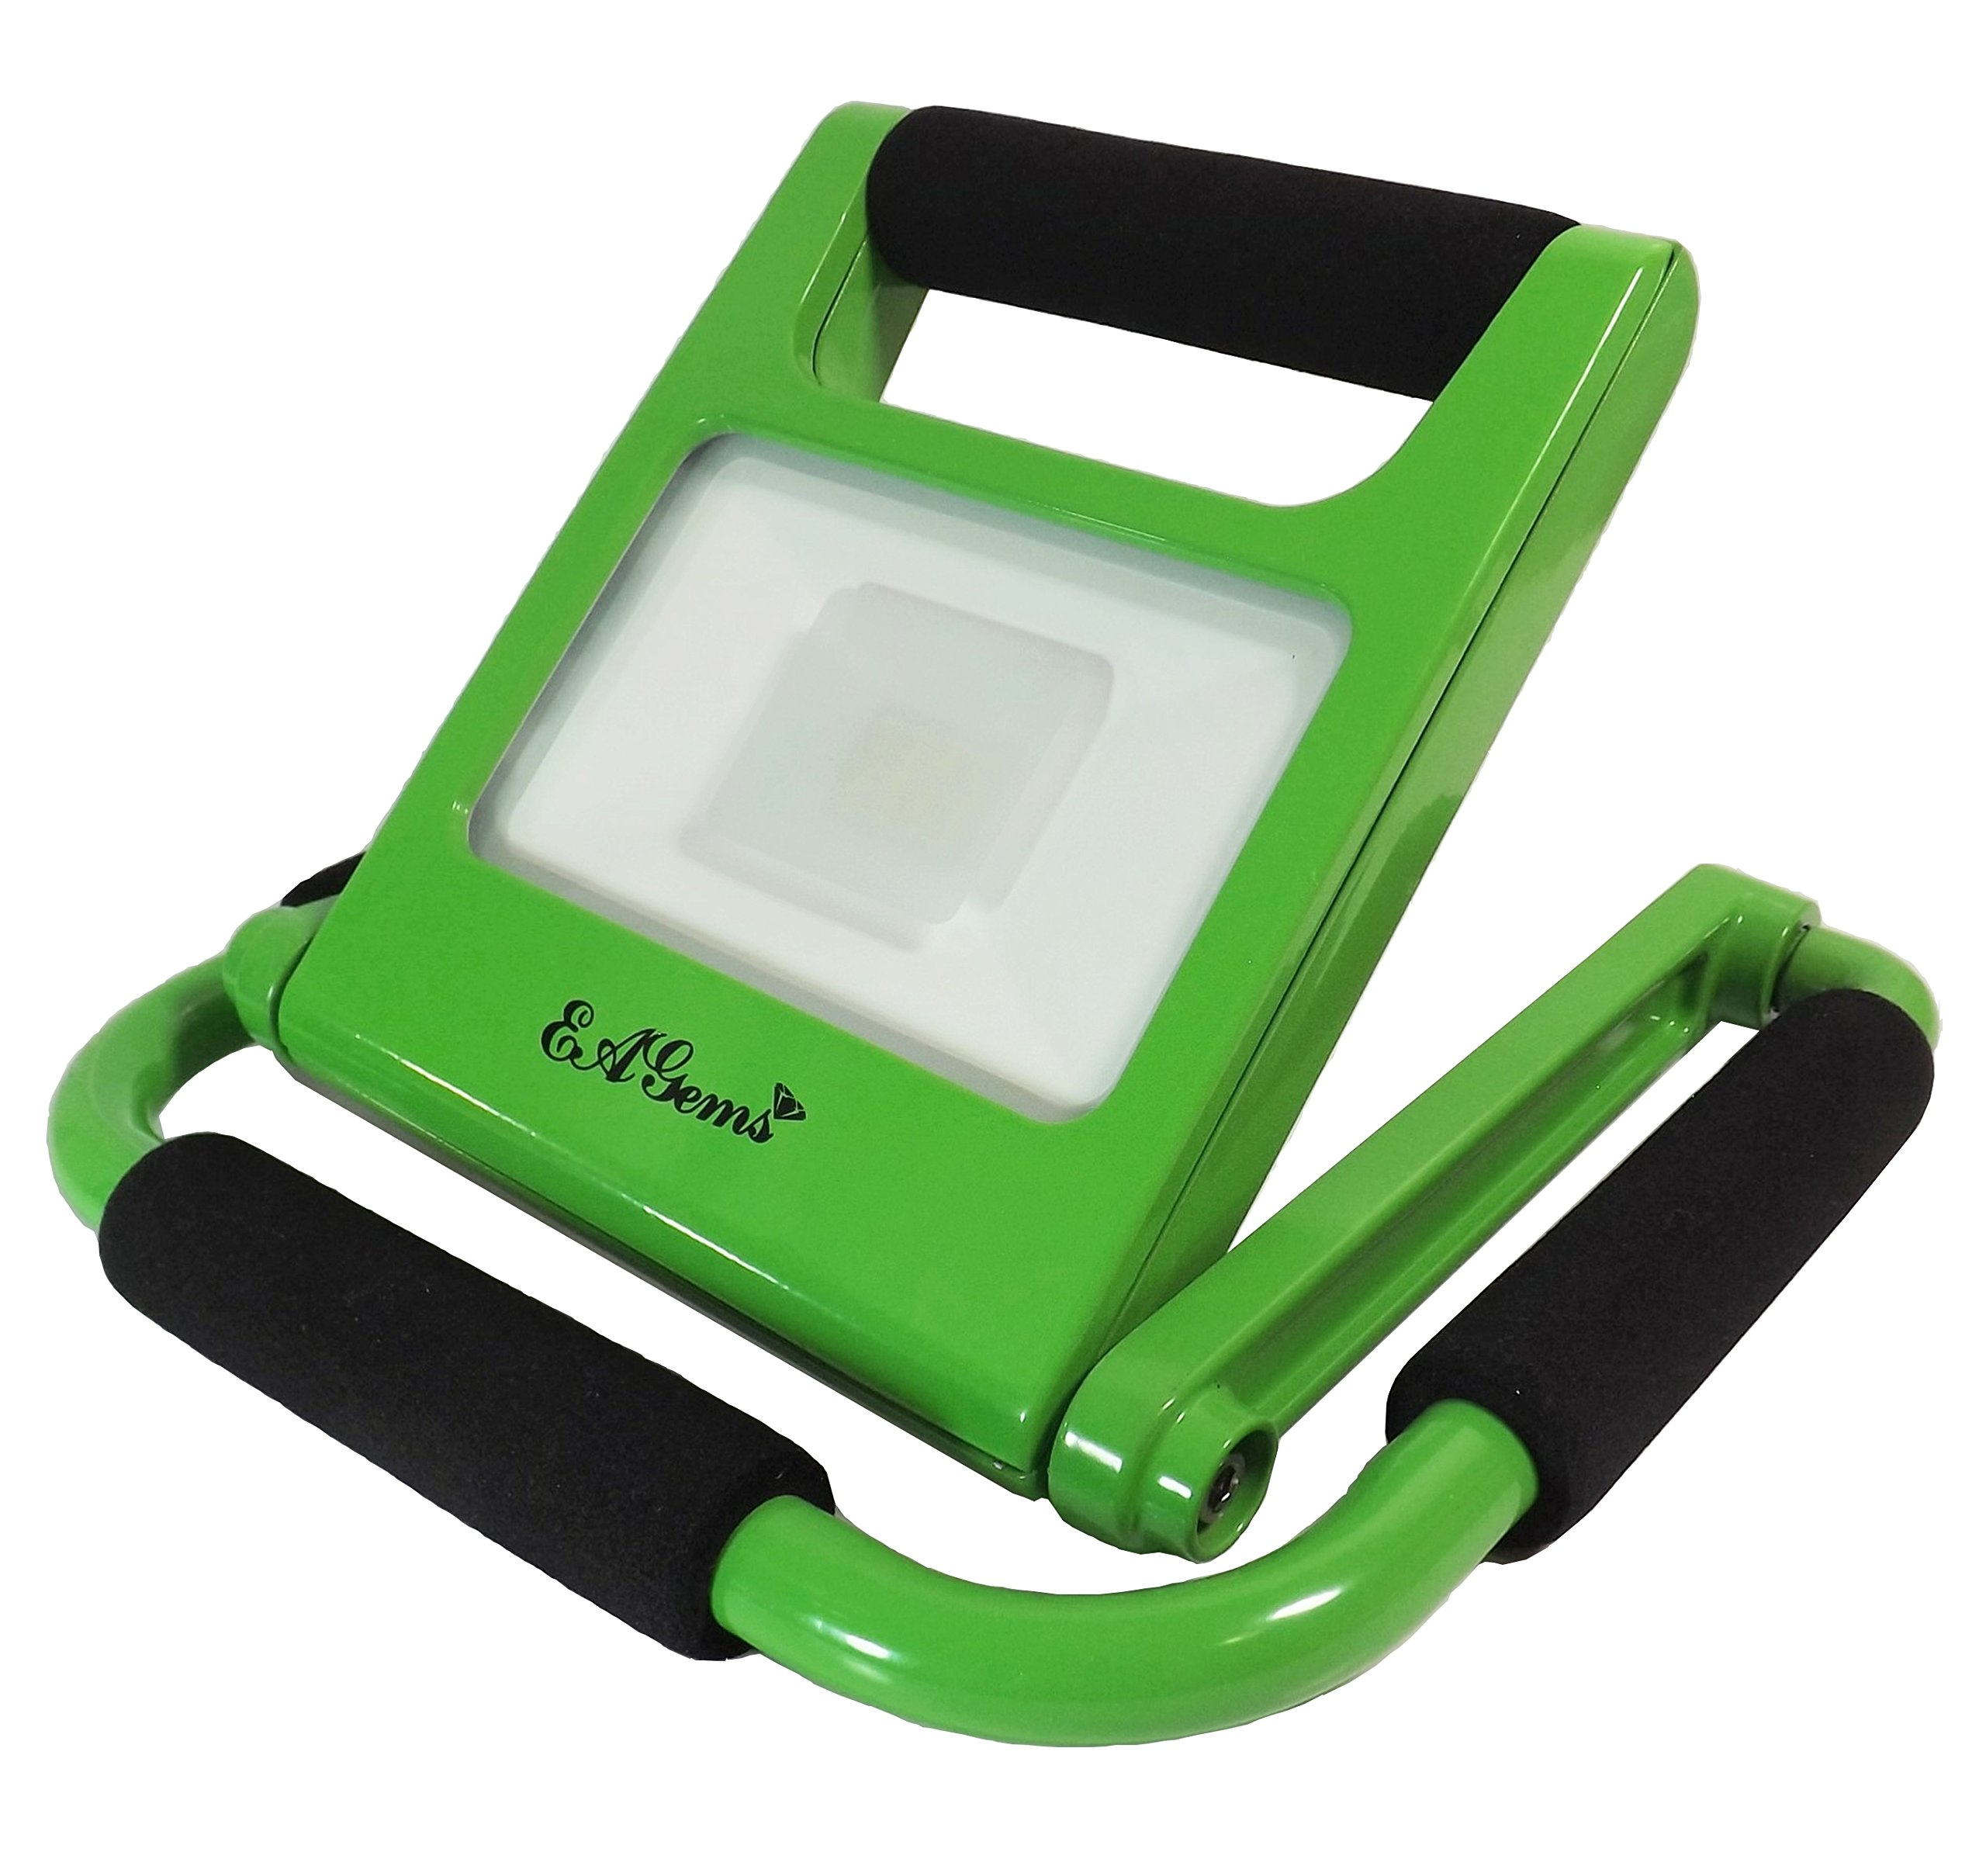 Portable LED Work Light by EAGems - Rechargeable Bright 10 Watt Lamp, Great for Home-Office-Car-Outside/In, Use as Emergency Spotlight or Flashlight - Folds to 1'' Thick - Adjustable 360 Degrees, Green